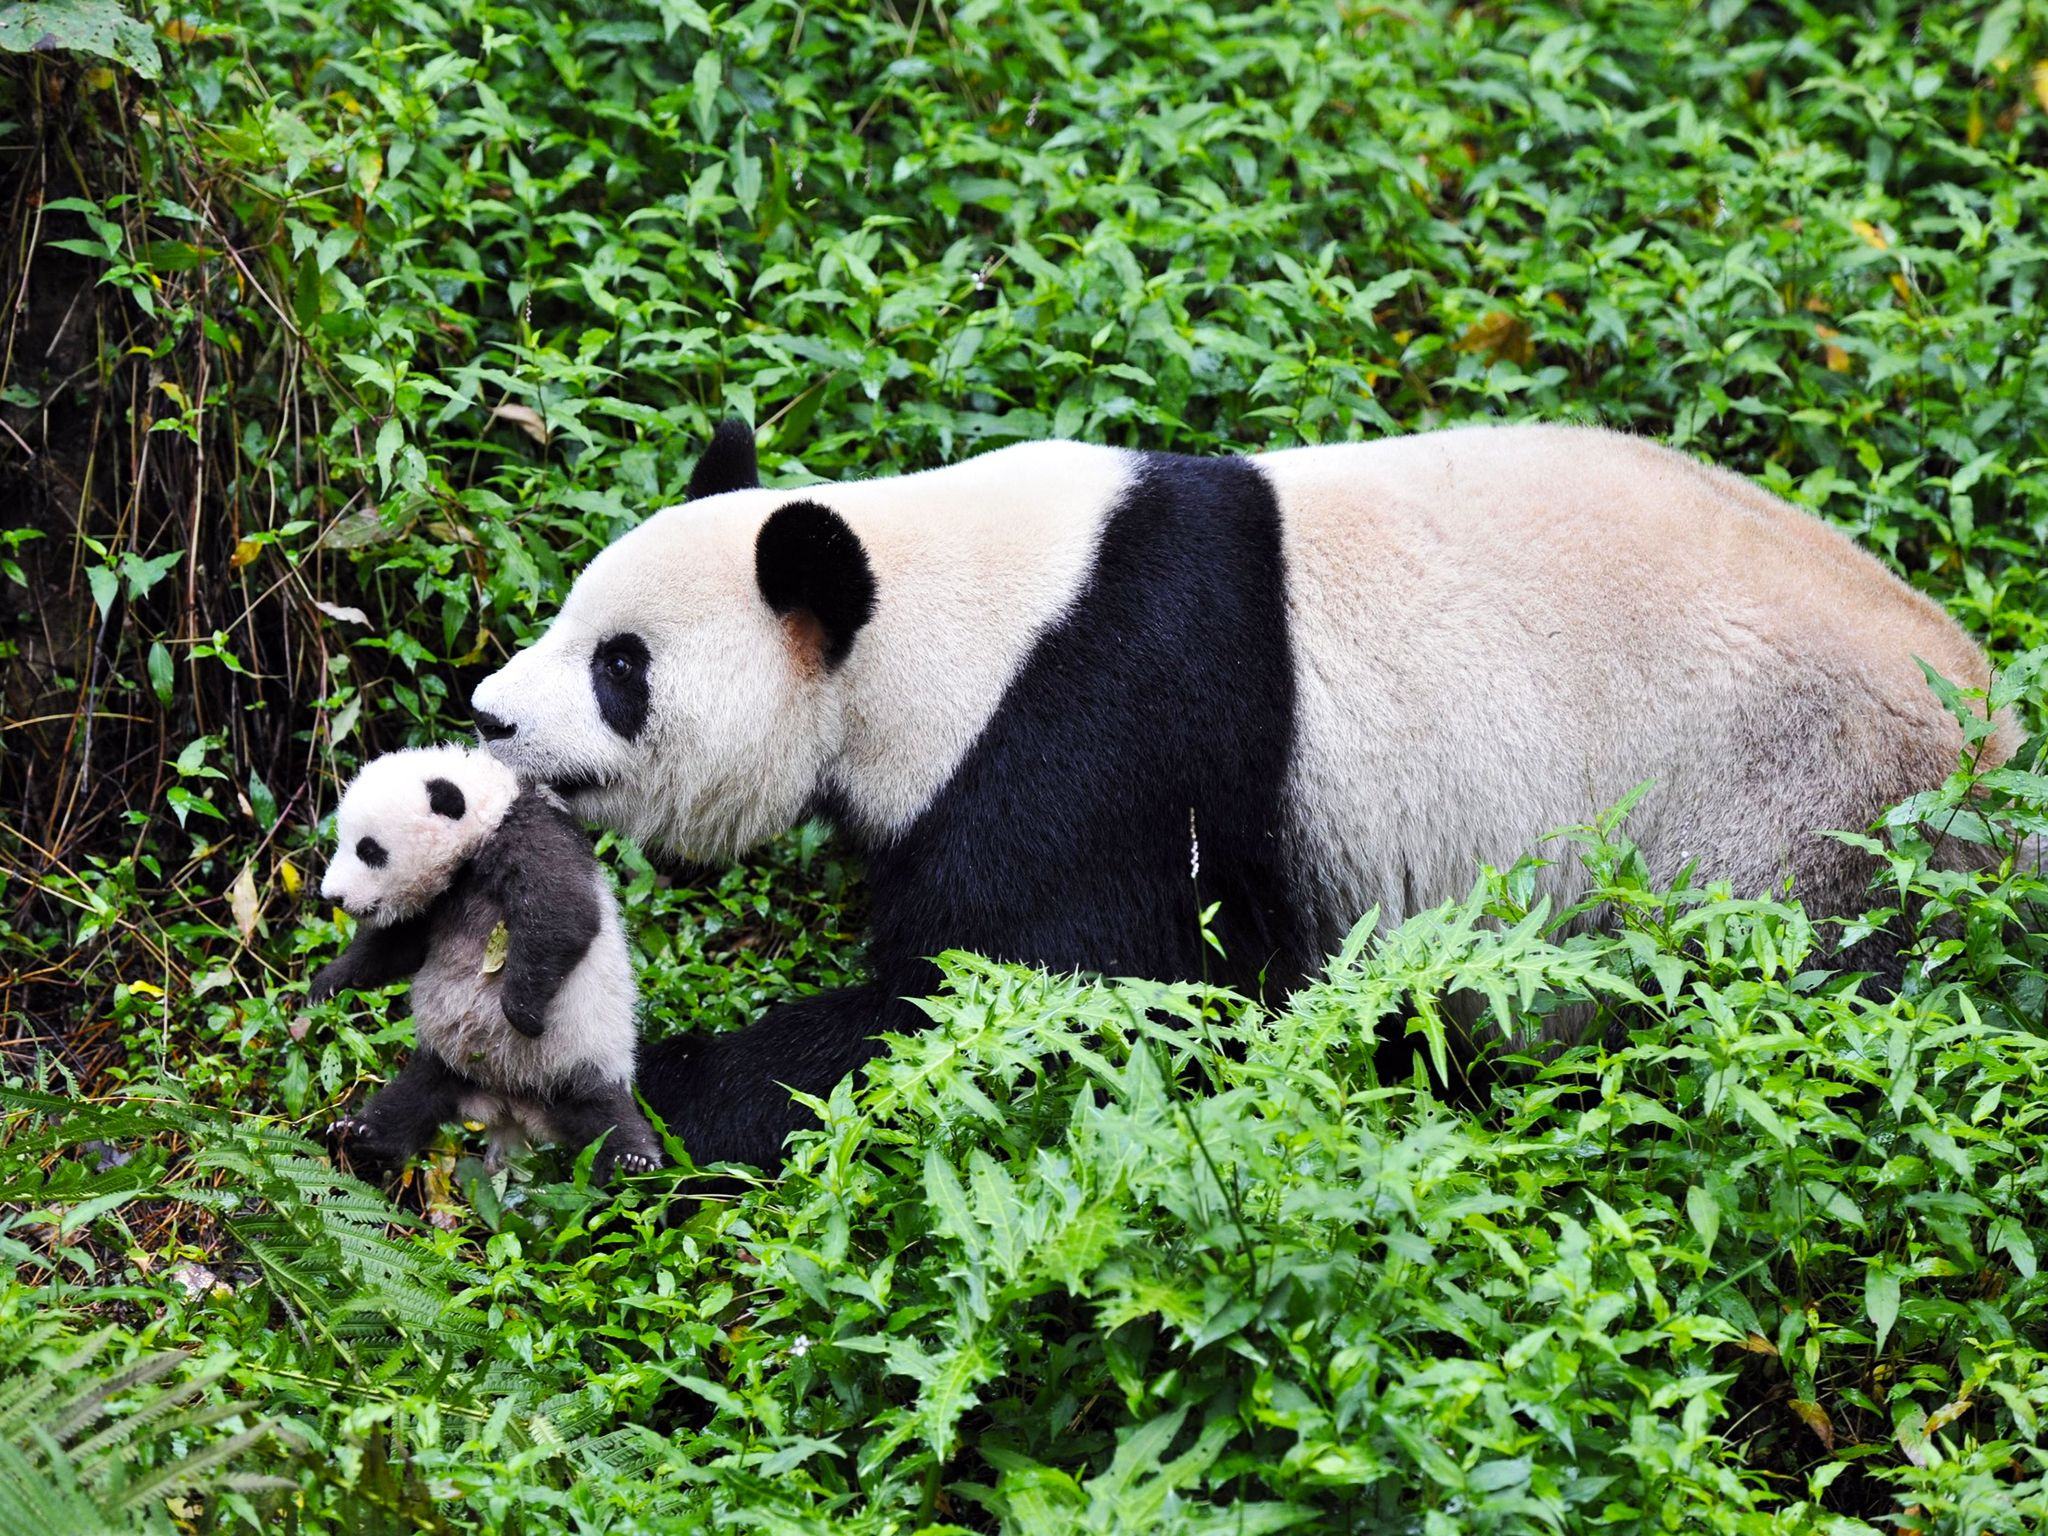 Wolong Panda Breeding Centre, Sichuan Province, China: A mother panda carrying her cub. This... [Photo of the day - سپتامبر 2014]